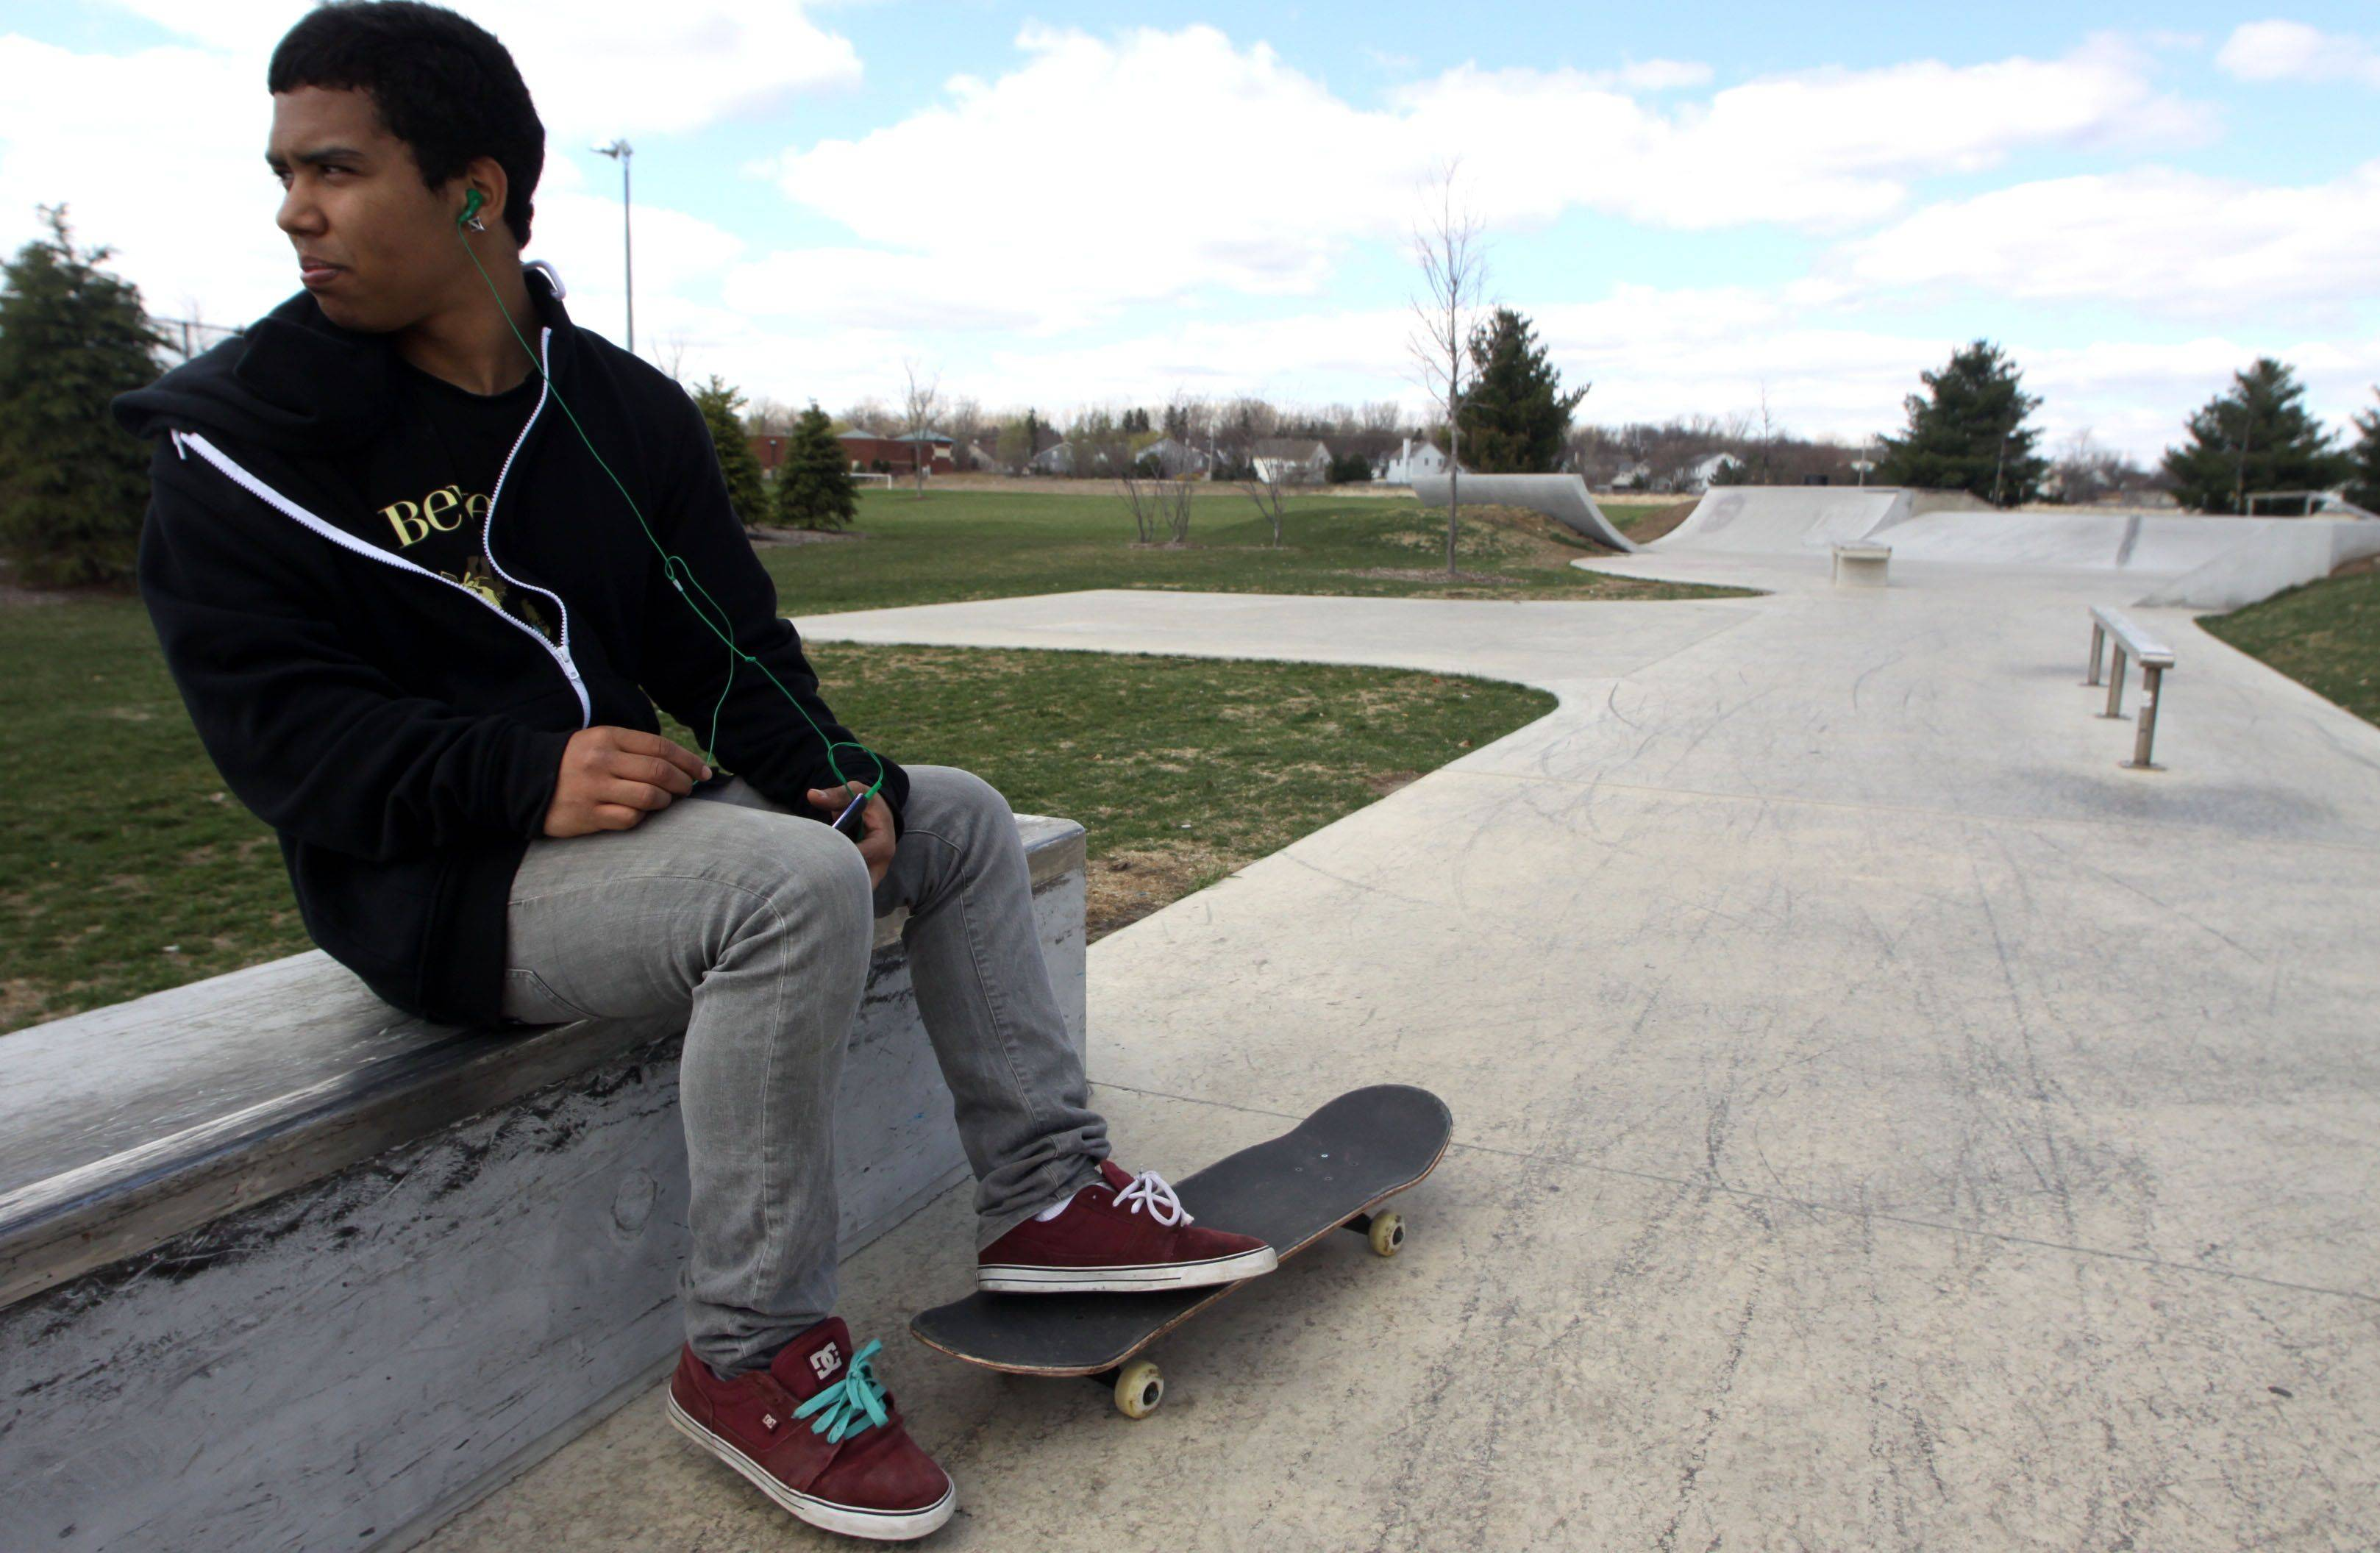 Ivan Arline, 17, of West Dundee speaks Monday afternoon about the possibility of cameras being installed at the skate area of West Dundee's Huffman Park in order to catch vandals.